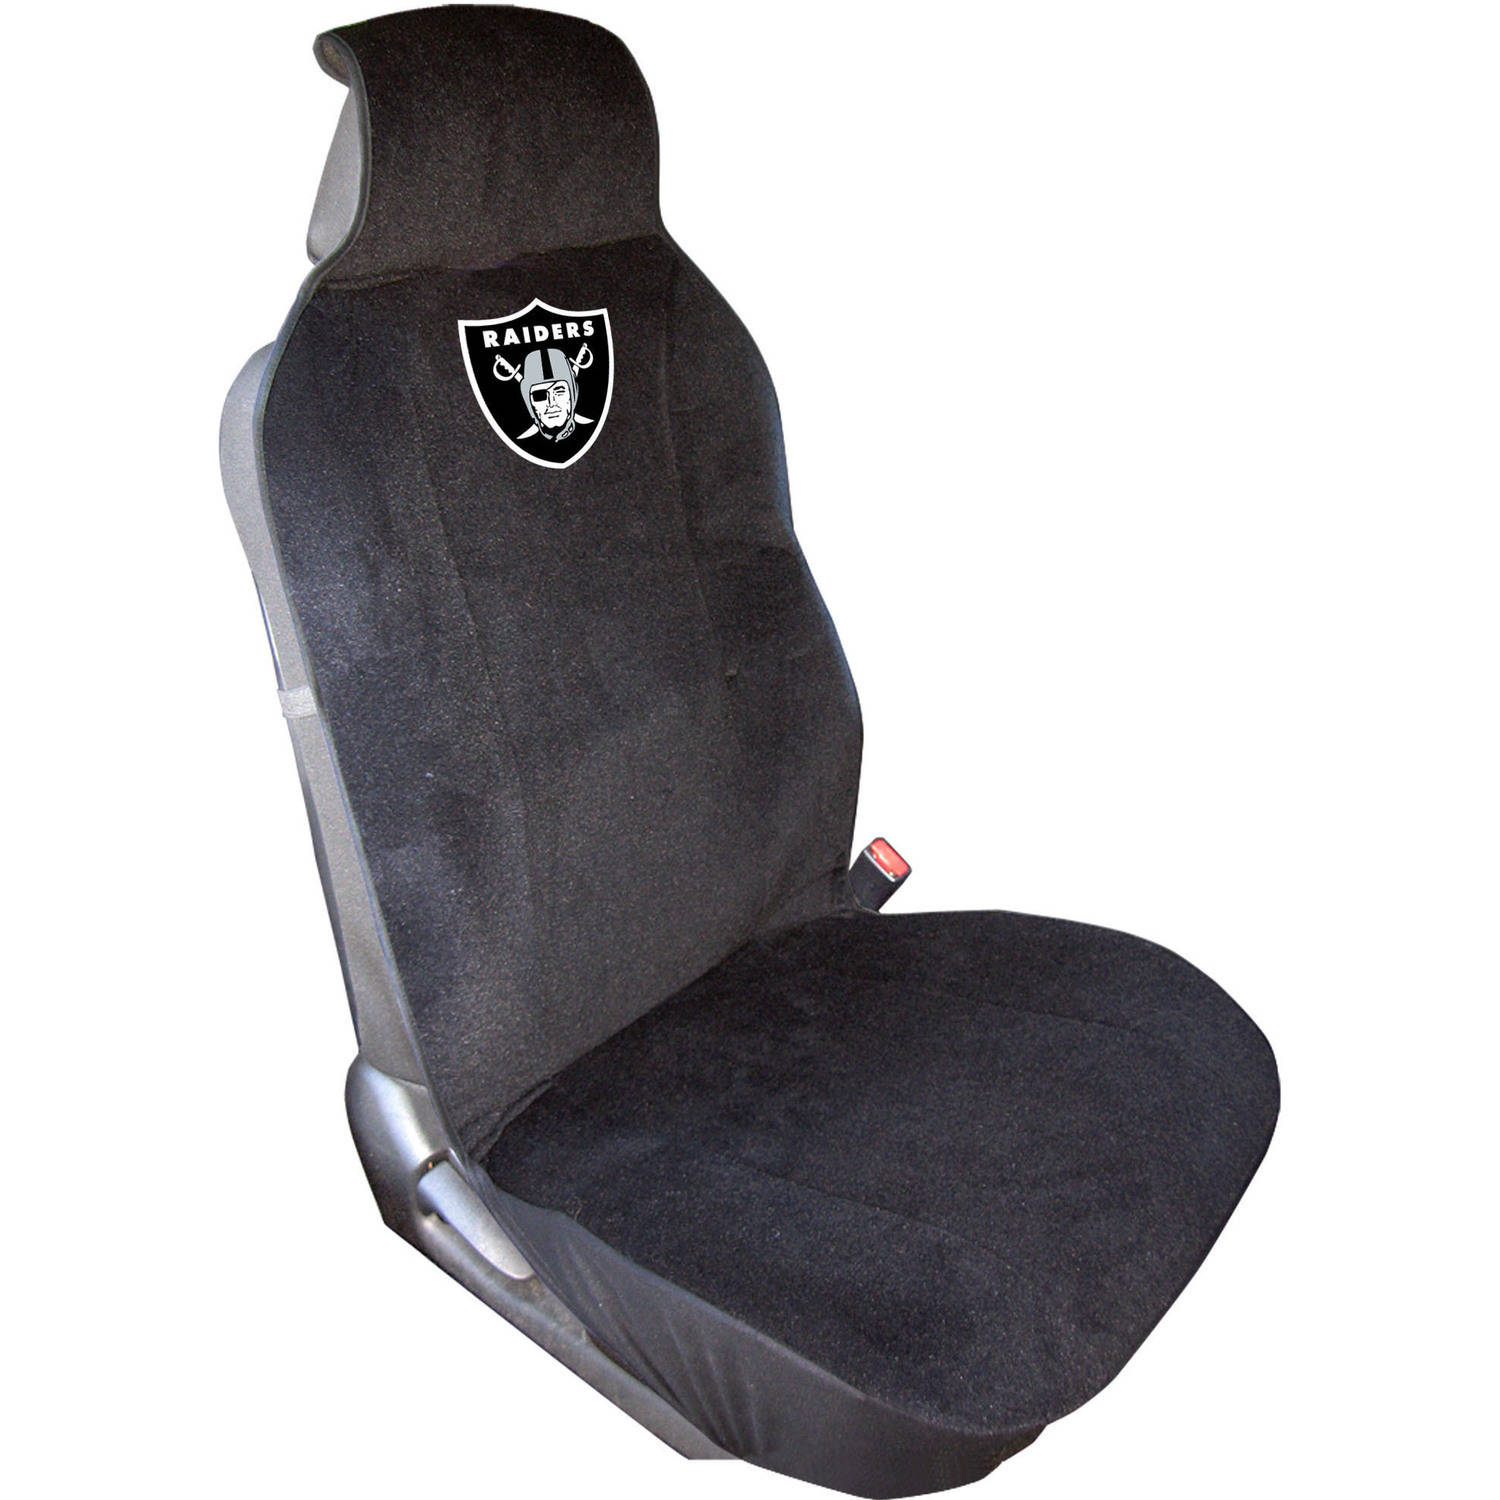 NFL Oakland Raiders Seat Cover